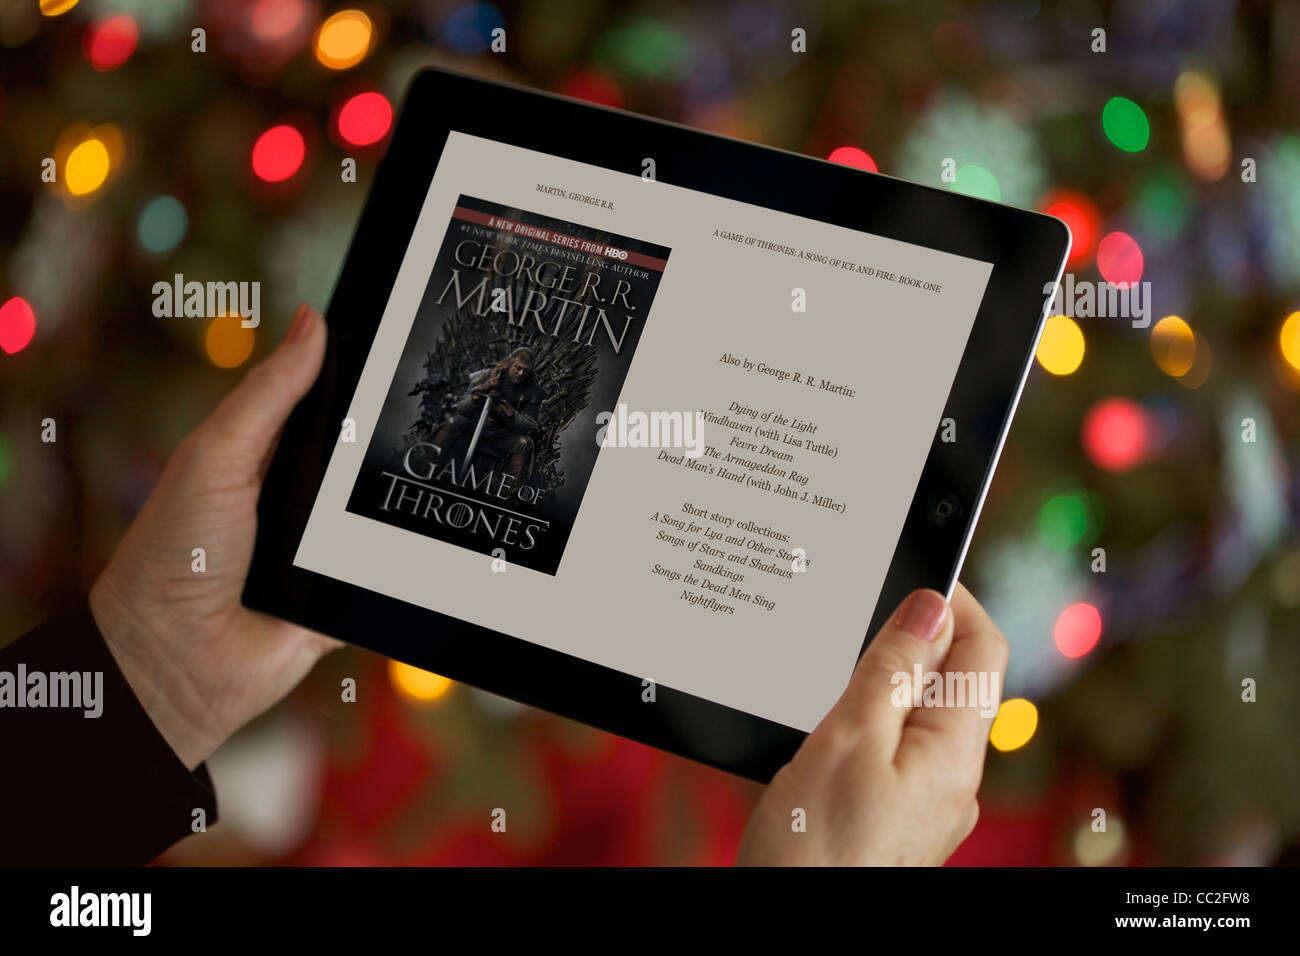 Close up view of a woman relaxing in the living room while reading 'Games of Thrones' on her iPad 2 - Stock Image